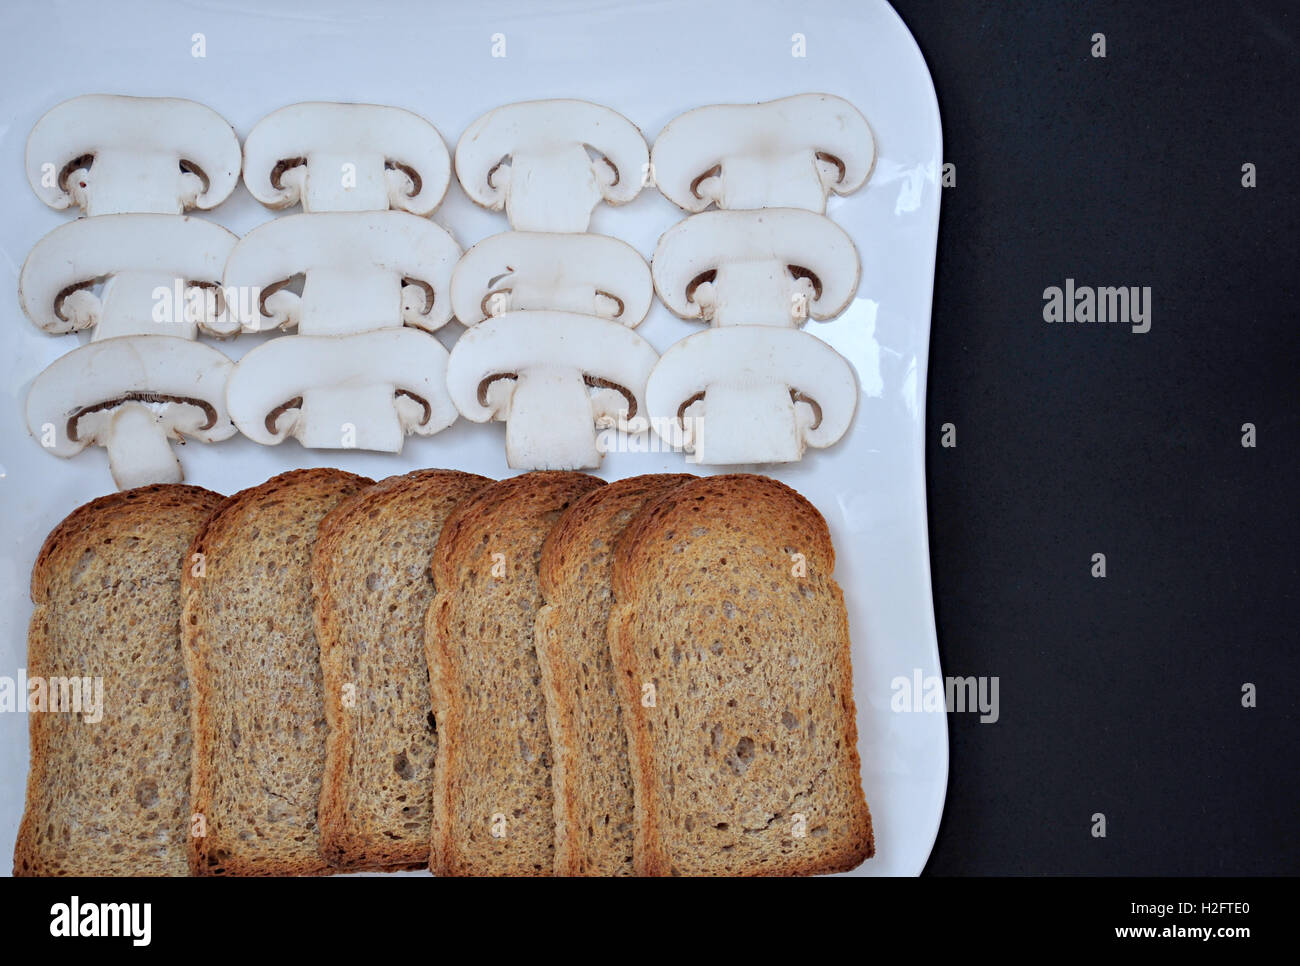 slices of bread and mushrooms - Stock Image